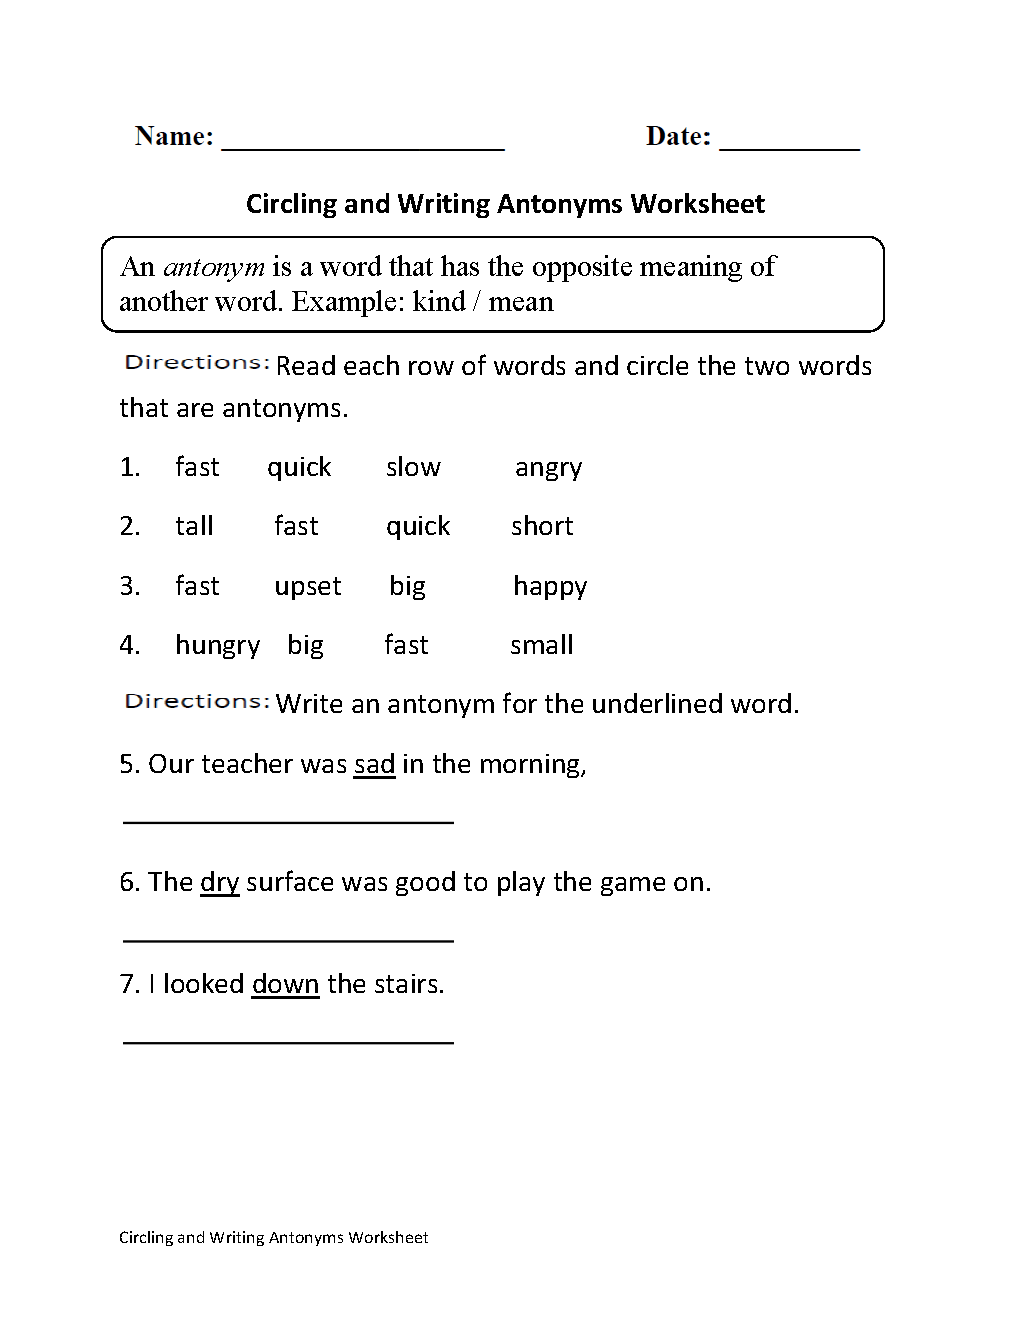 Printables Free Antonym Worksheets englishlinx com antonyms worksheets circling and writing worksheet